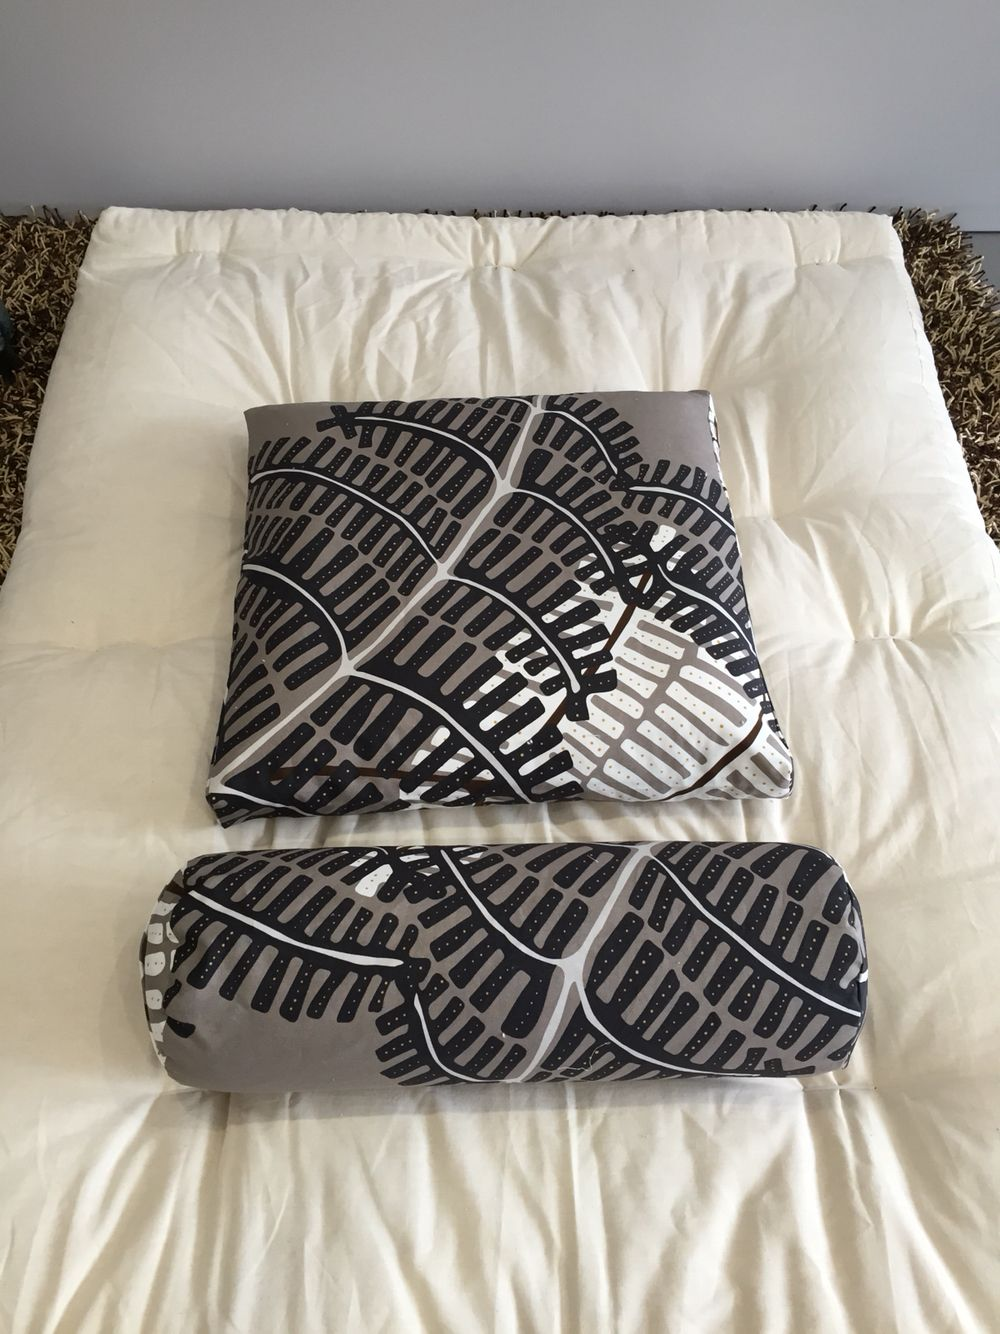 Custom made bolsters and meditation pillows made with 100